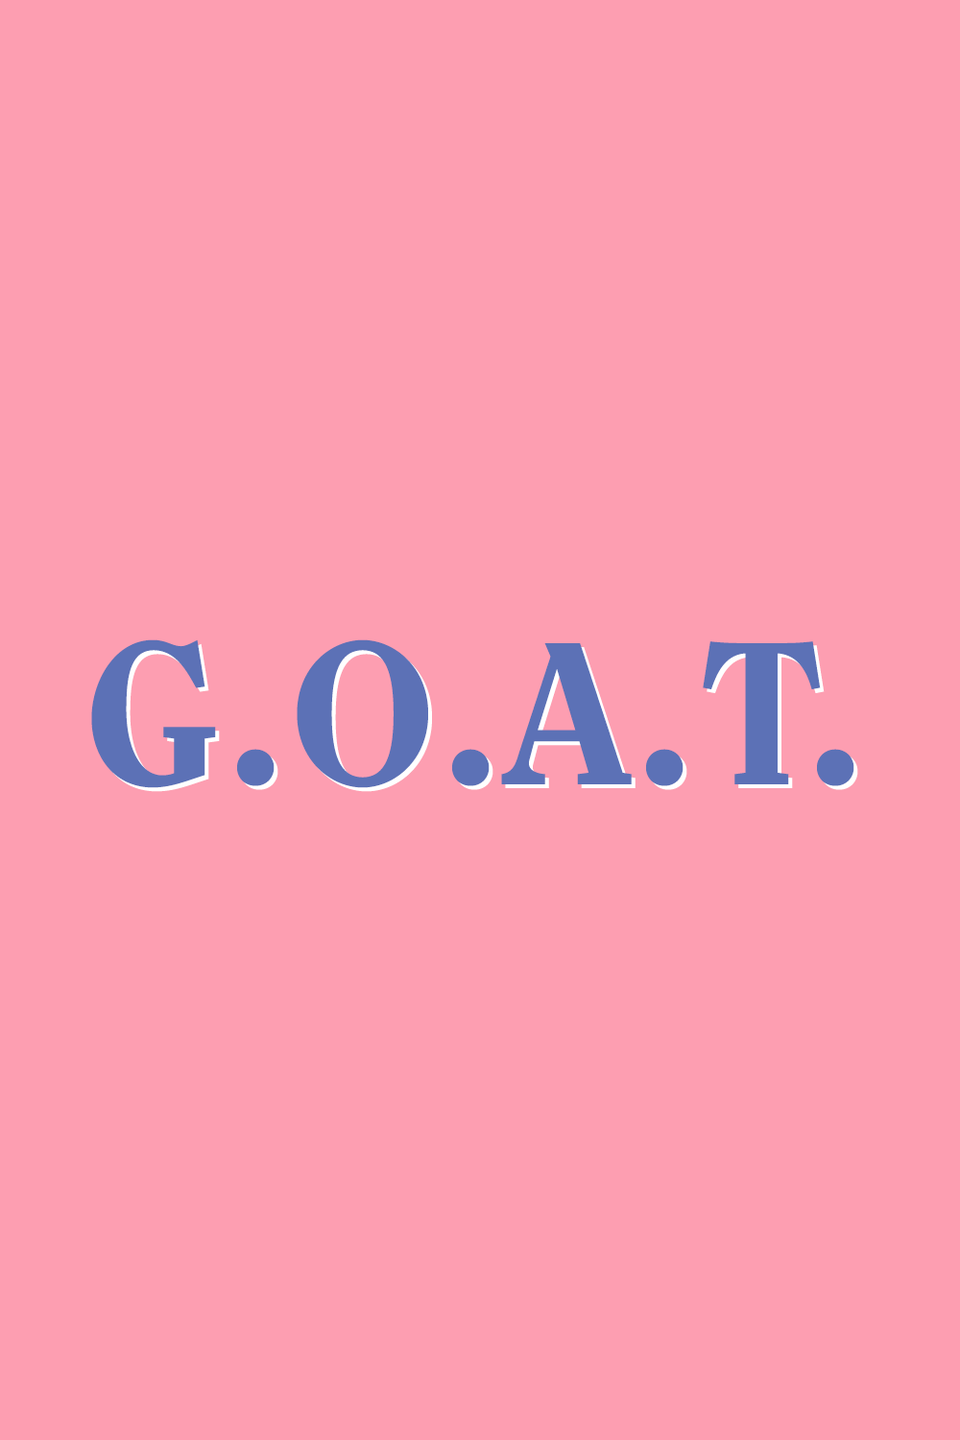 """<p>Here's an easy one: G.O.A.T. is an acronym for greatest of all time. Commonly referenced in sports, the term is traced back to boxer <a href=""""https://money.cnn.com/2006/04/11/news/newsmakers/muhammad_ali/"""" rel=""""nofollow noopener"""" target=""""_blank"""" data-ylk=""""slk:Muhammad Ali"""" class=""""link rapid-noclick-resp"""">Muhammad Ali</a>. Used in a sentence: When it comes to tennis, Serena Williams is the G.O.A.T.</p>"""